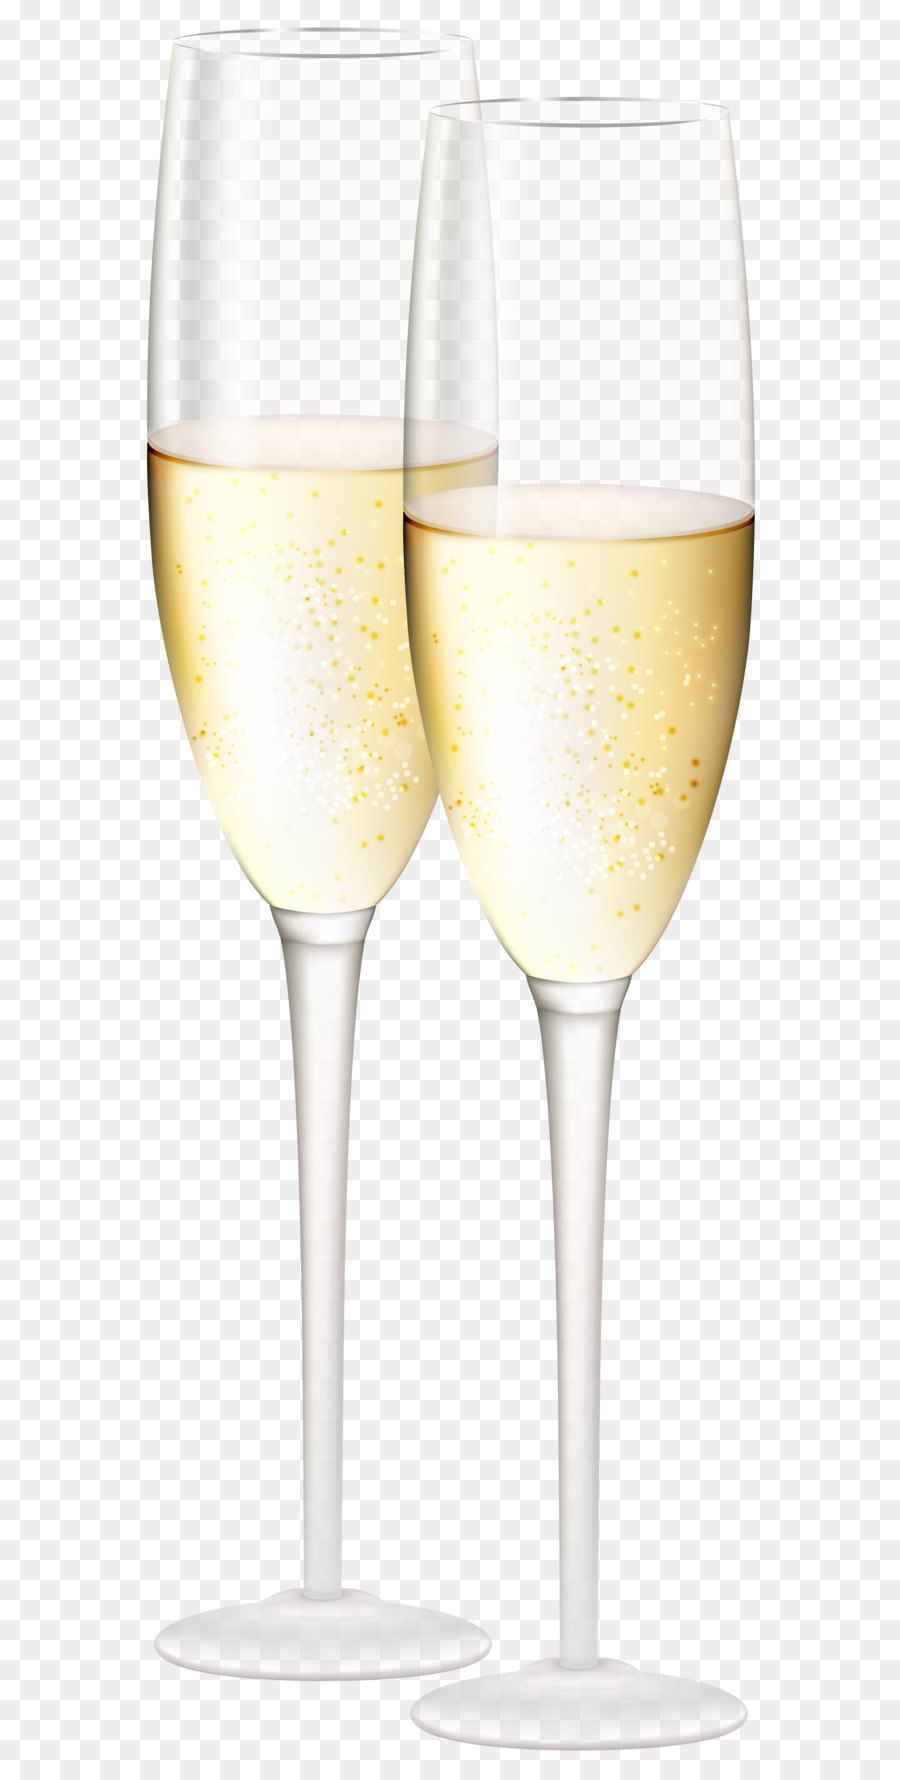 Champagne glass clipart png clipart free download Champagne Bottle png download - 2266*6200 - Free Transparent ... clipart free download